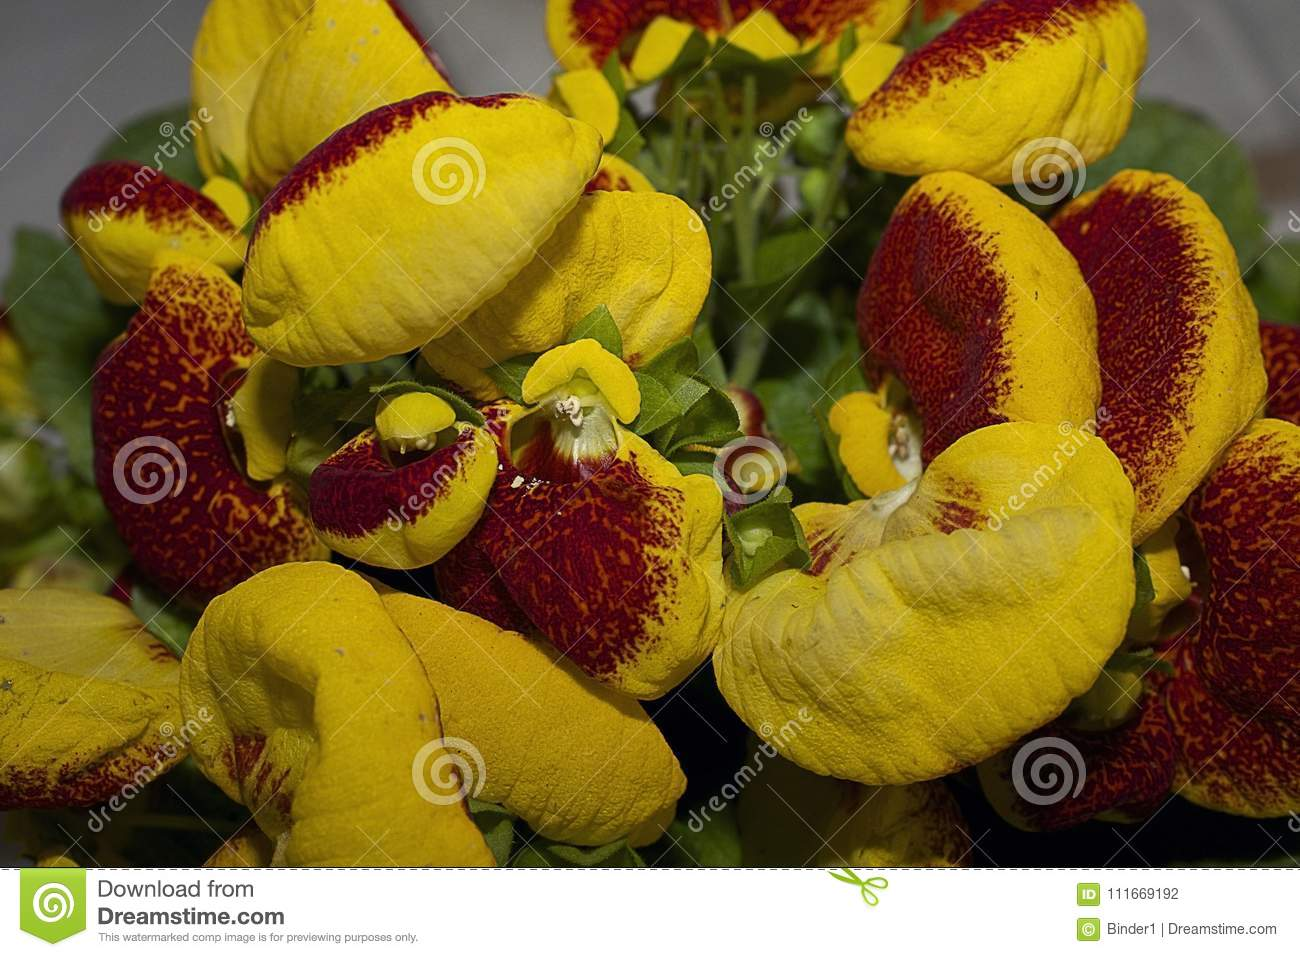 Very pretty colorful spring flowers close up stock photo image of download very pretty colorful spring flowers close up stock photo image of beautiful floral mightylinksfo